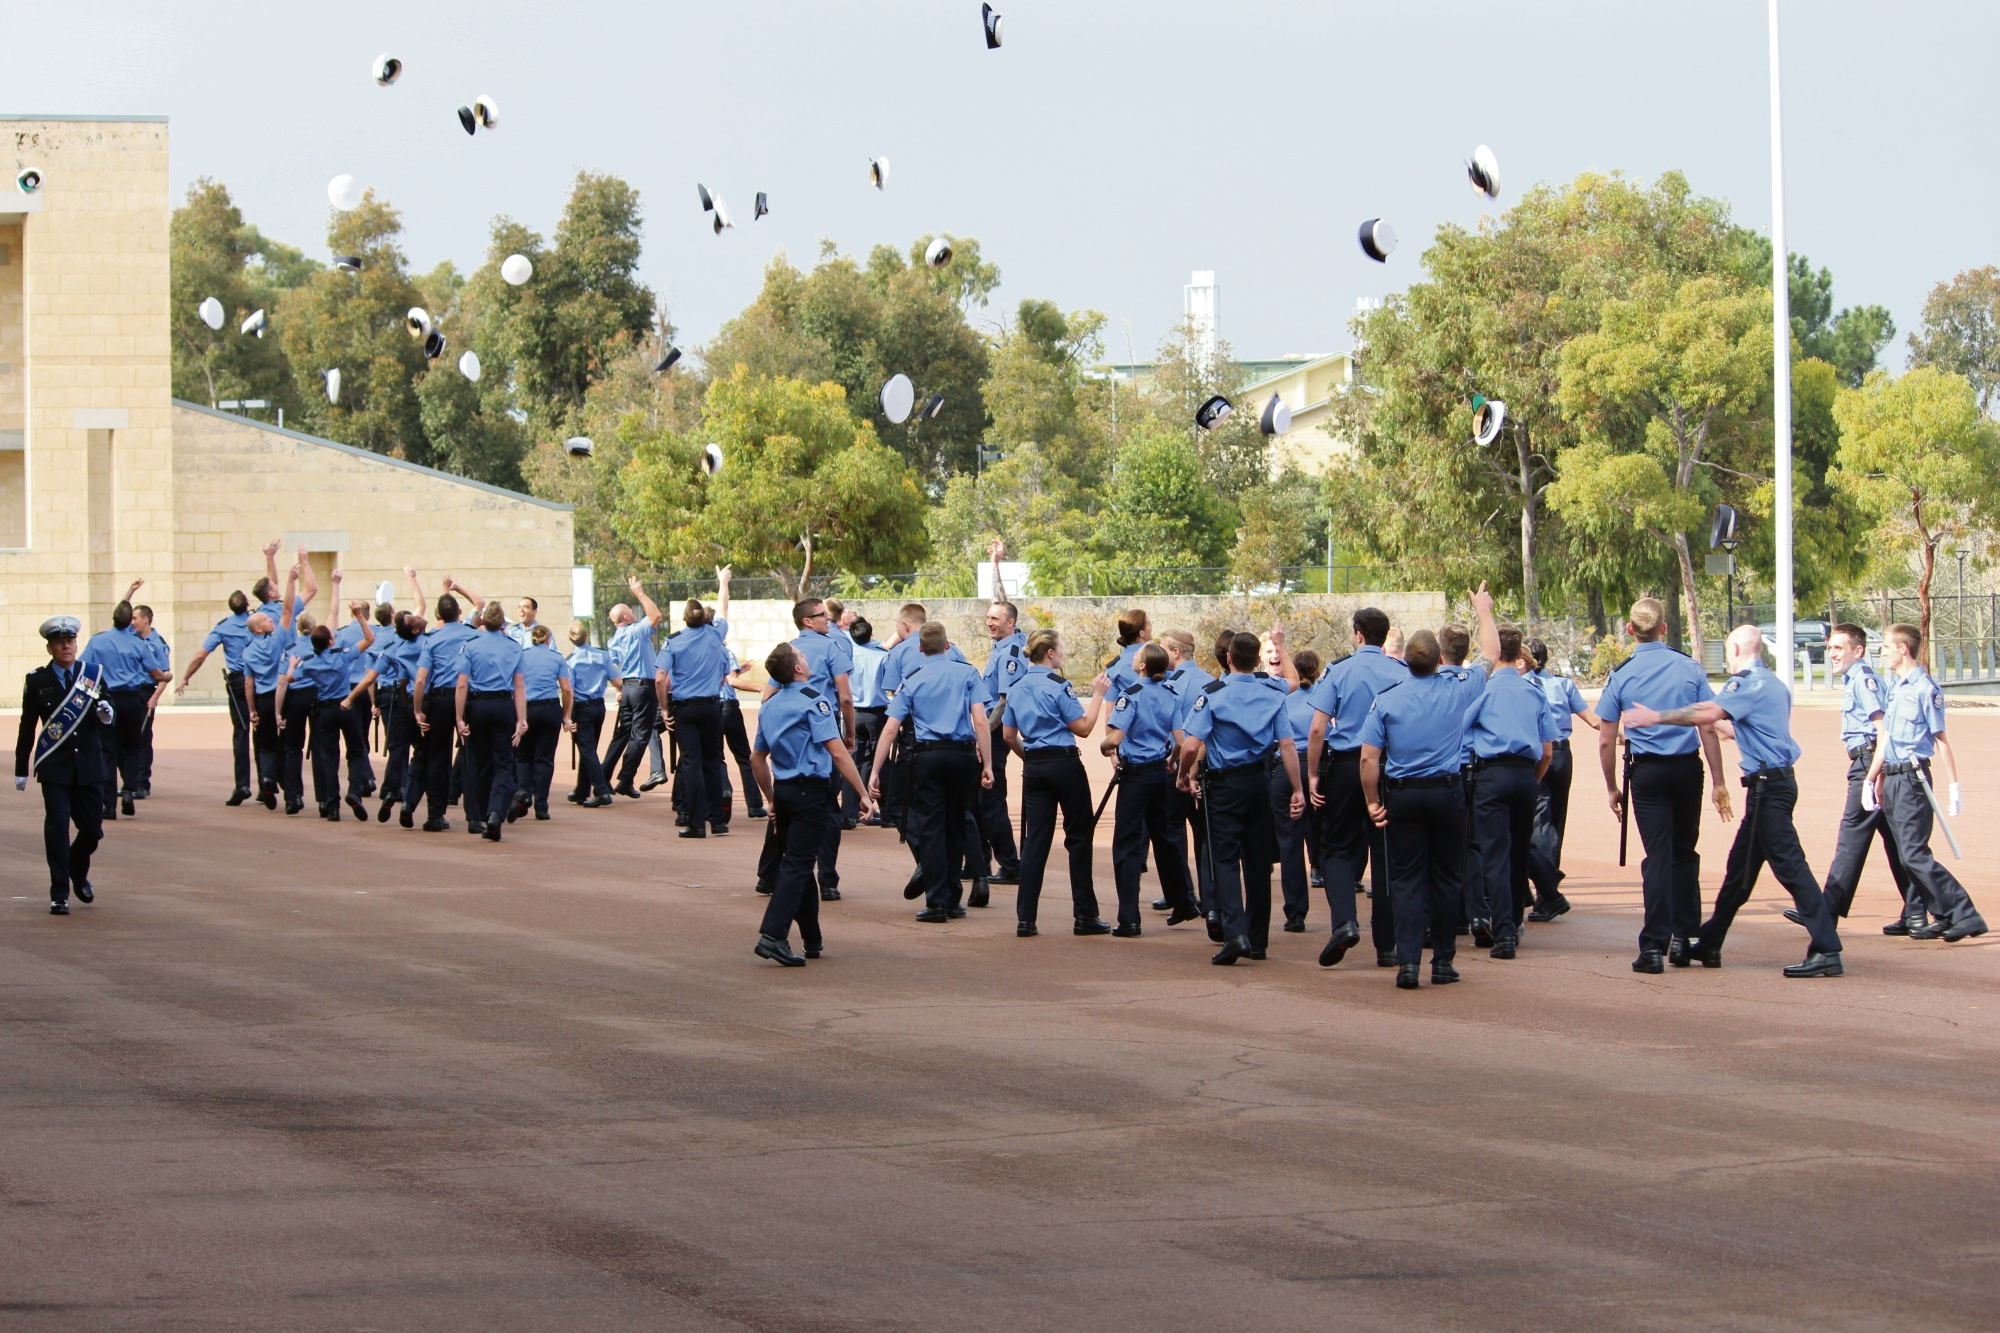 WA Police welcome dozens of new officers